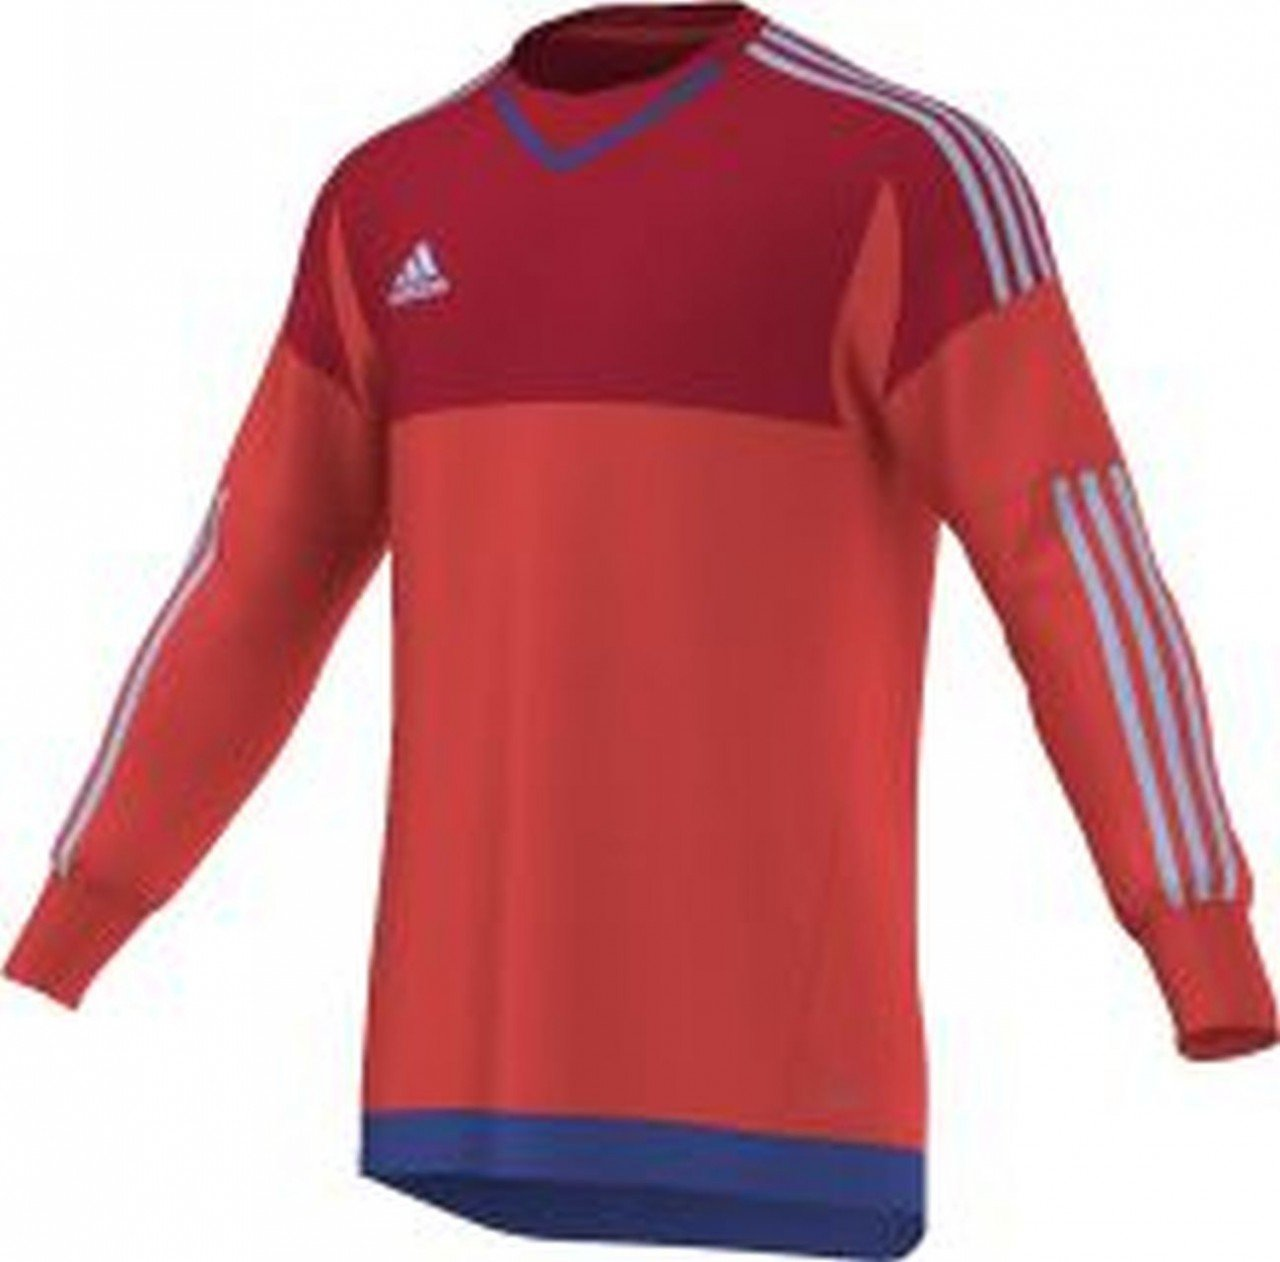 Adidas Herren Torwarttrikot Top-15 Goalkeeper